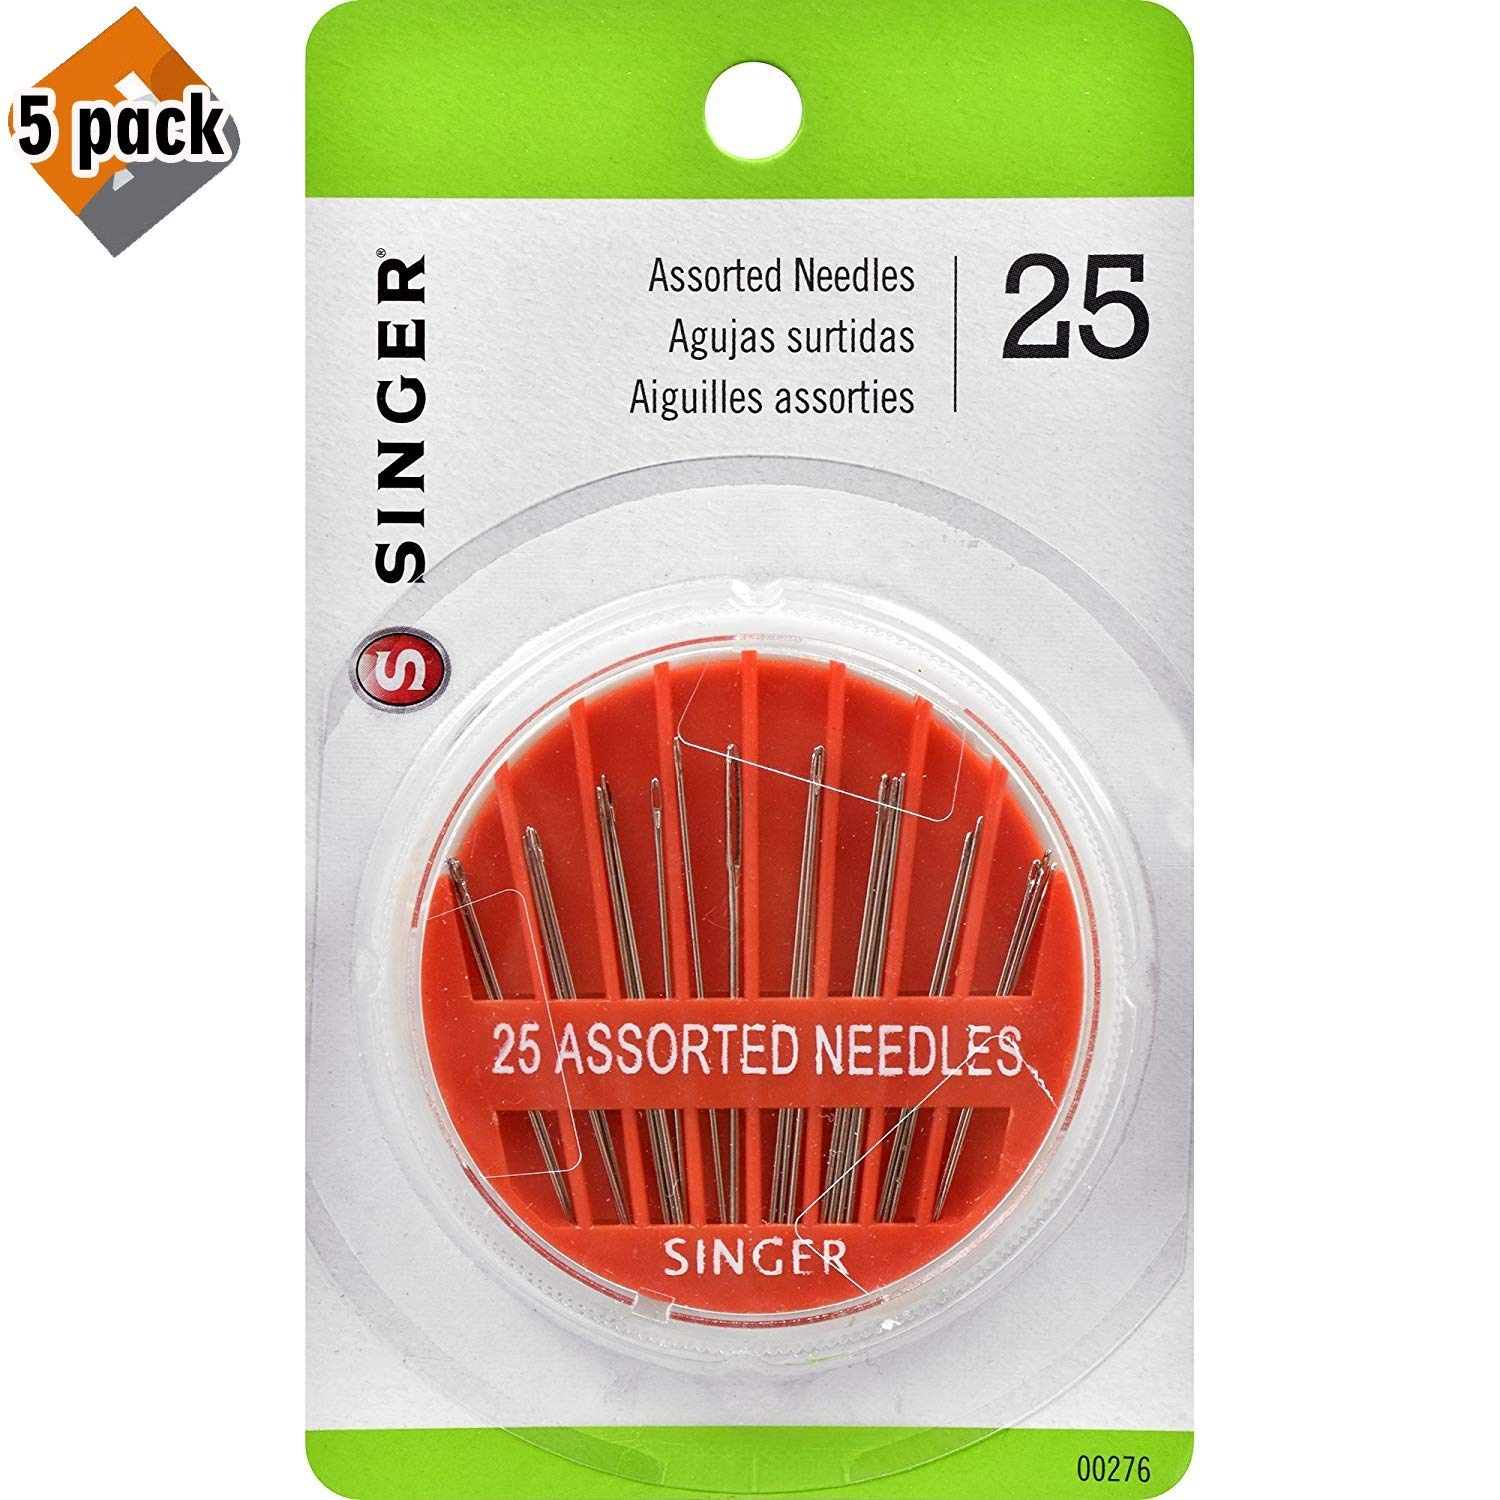 25-Count Pack of 5 SINGER 00276 Assorted Hand Needles in Compact